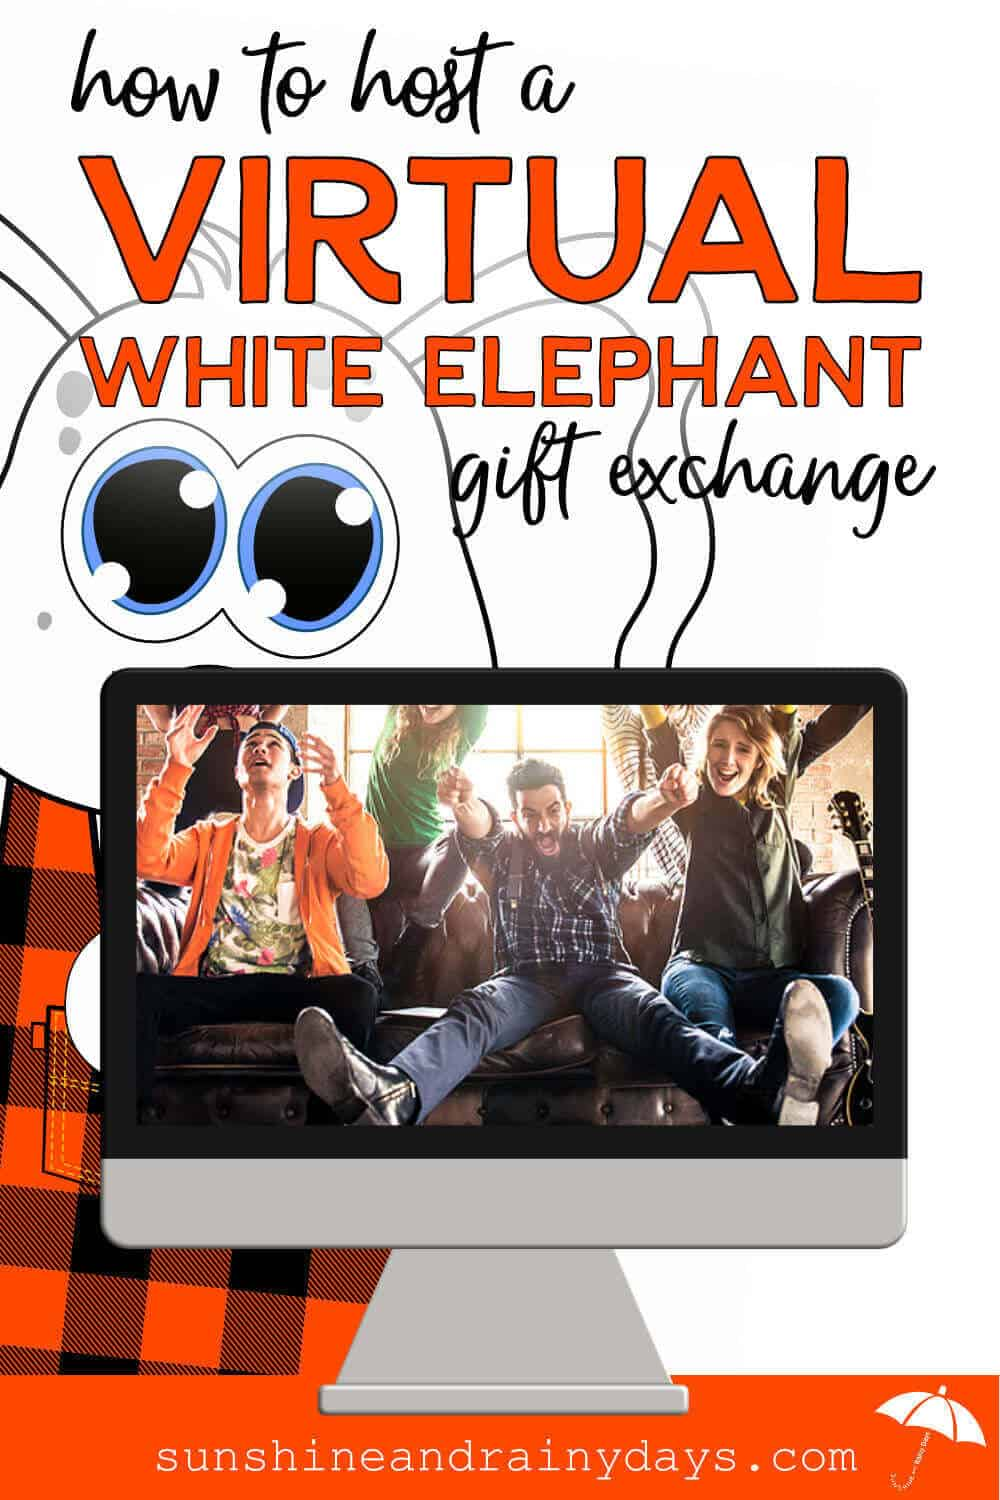 People having fun on a computer screen with the words: How To Do A Virtual White Elephant Gift Exchange